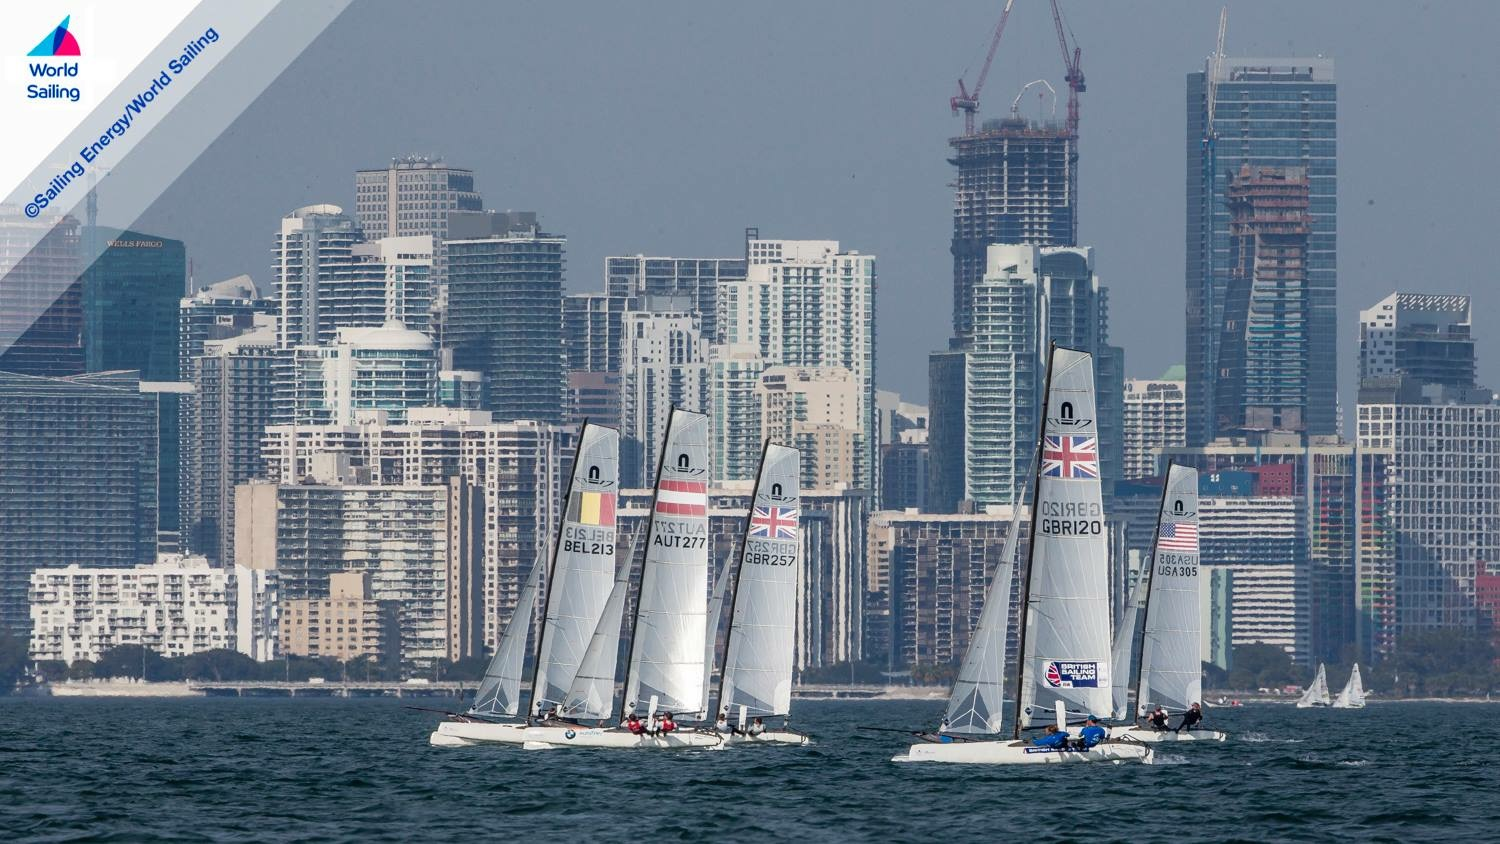 Boats and Skyscrapers. Photo Sailing Energy